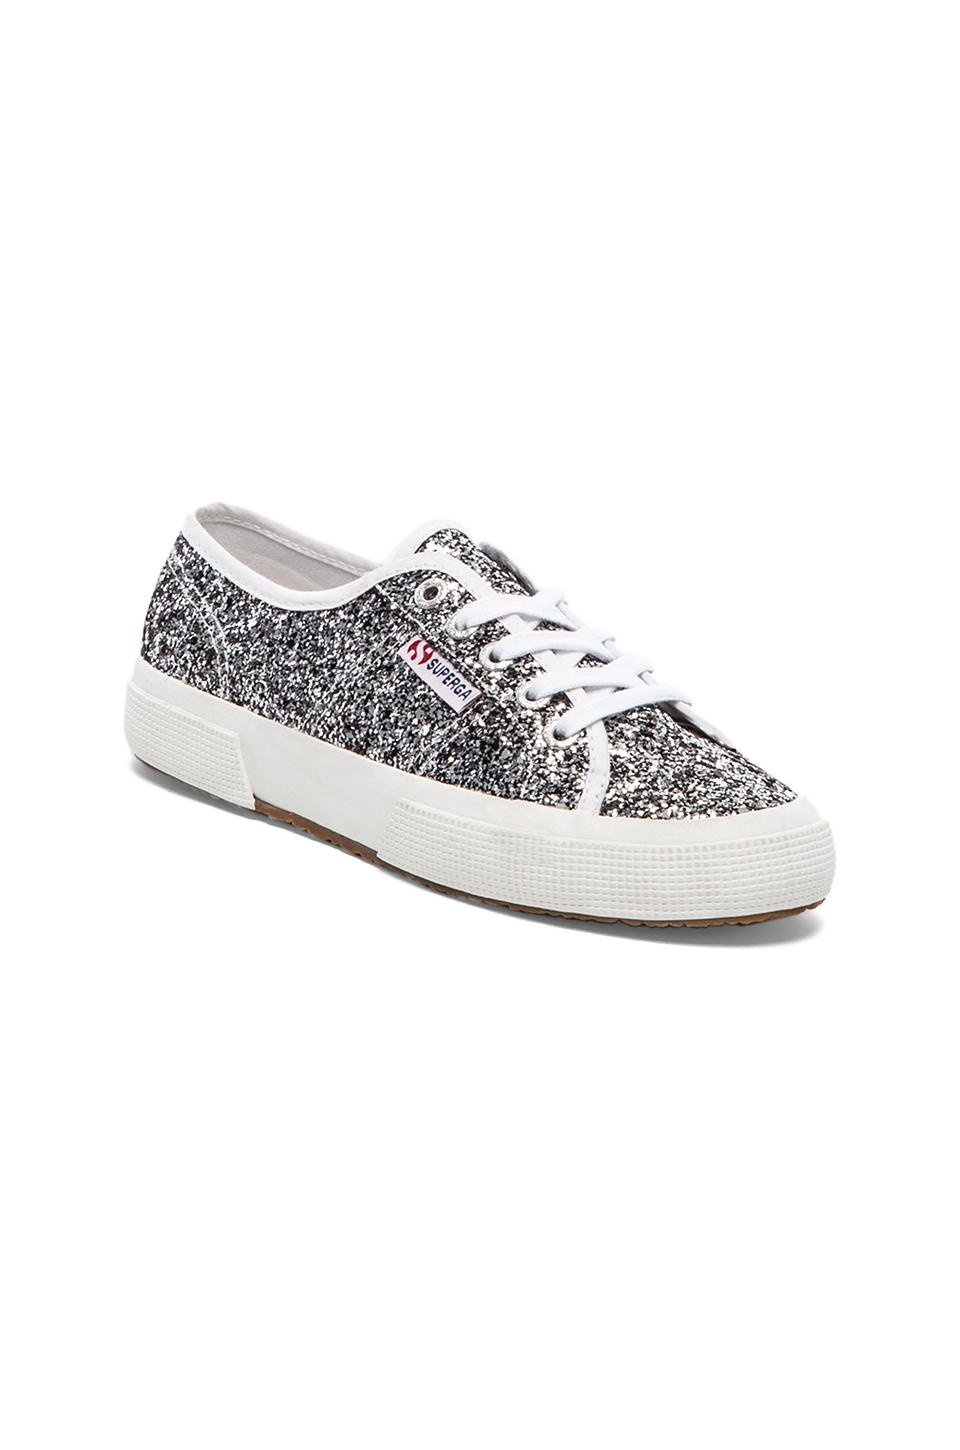 superga chunky glitter sneakers in silver revolve. Black Bedroom Furniture Sets. Home Design Ideas